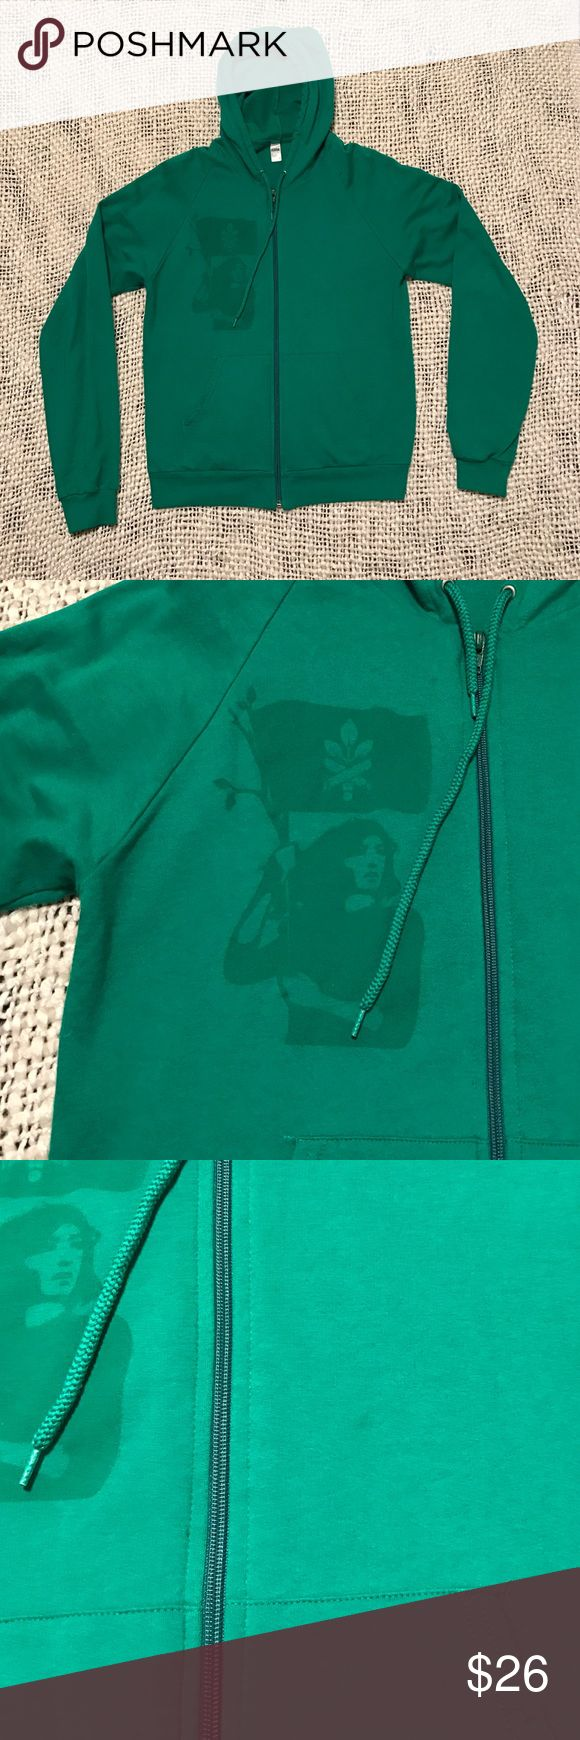 American Apparel hoodie green women's size M Like new only worn twice American Apparel hoodie. Never washed! Beautiful bright green size M women's. There is the tiniest oil spot to the left of the screen print on the front. Fits true to size M. Tops Sweatshirts & Hoodies